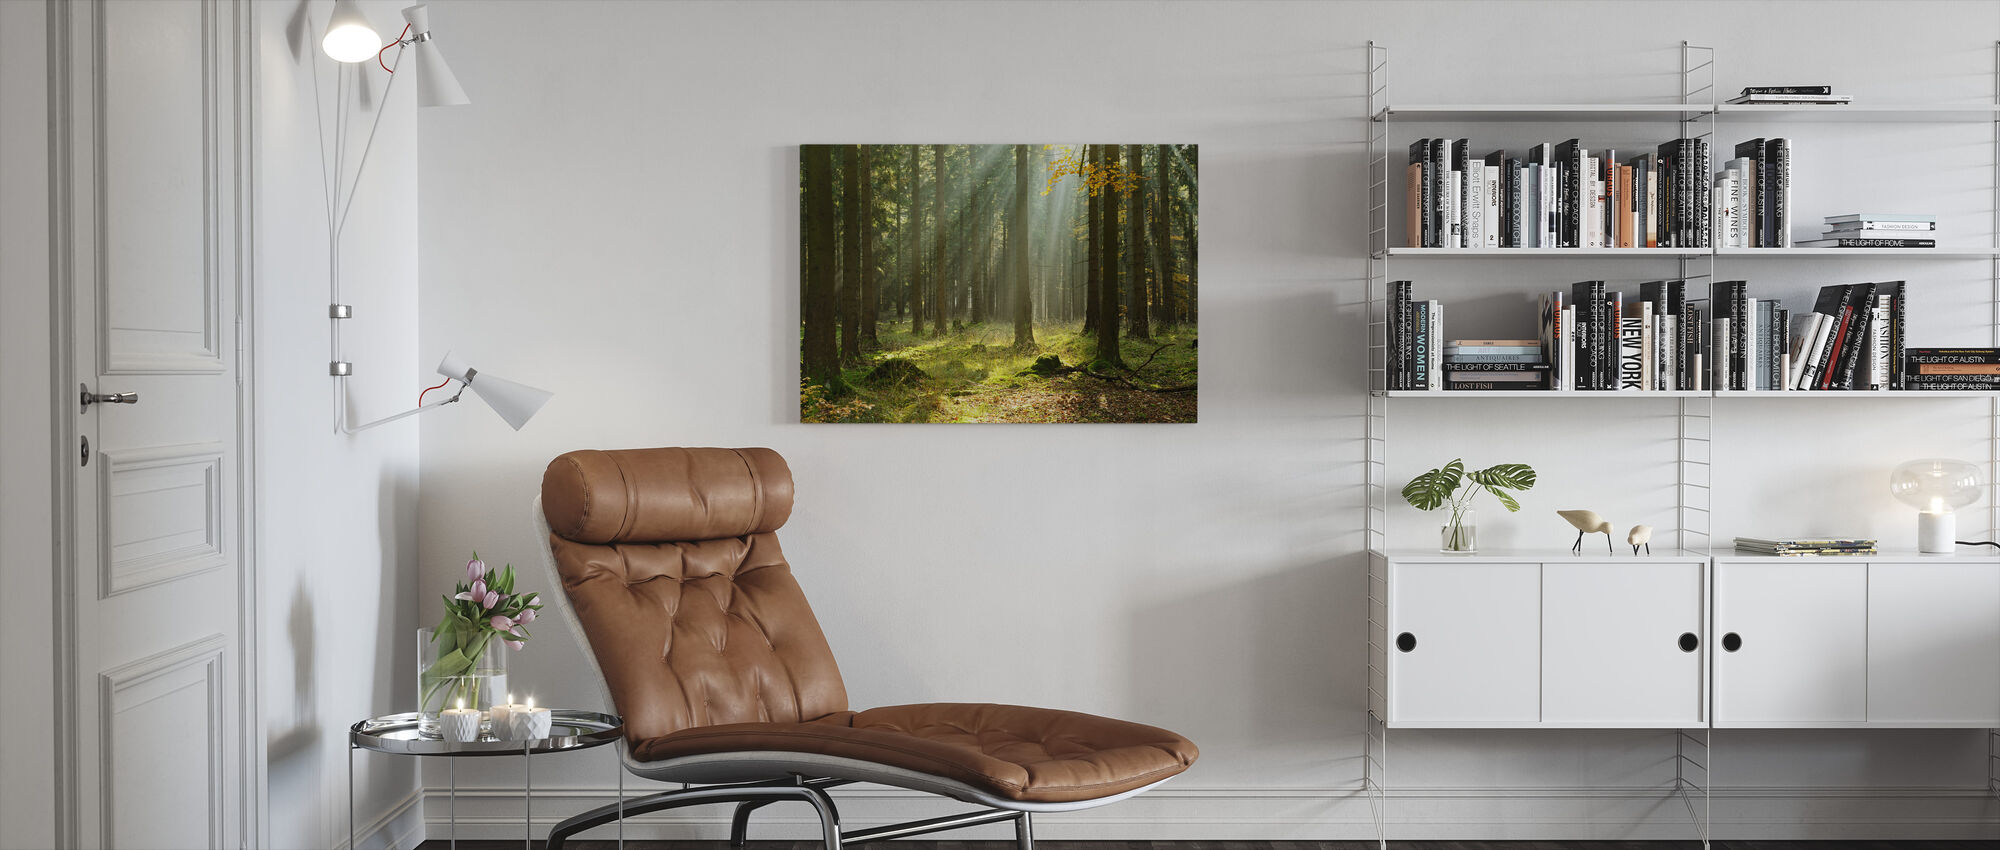 Eetherisch bos - Canvas print - Woonkamer